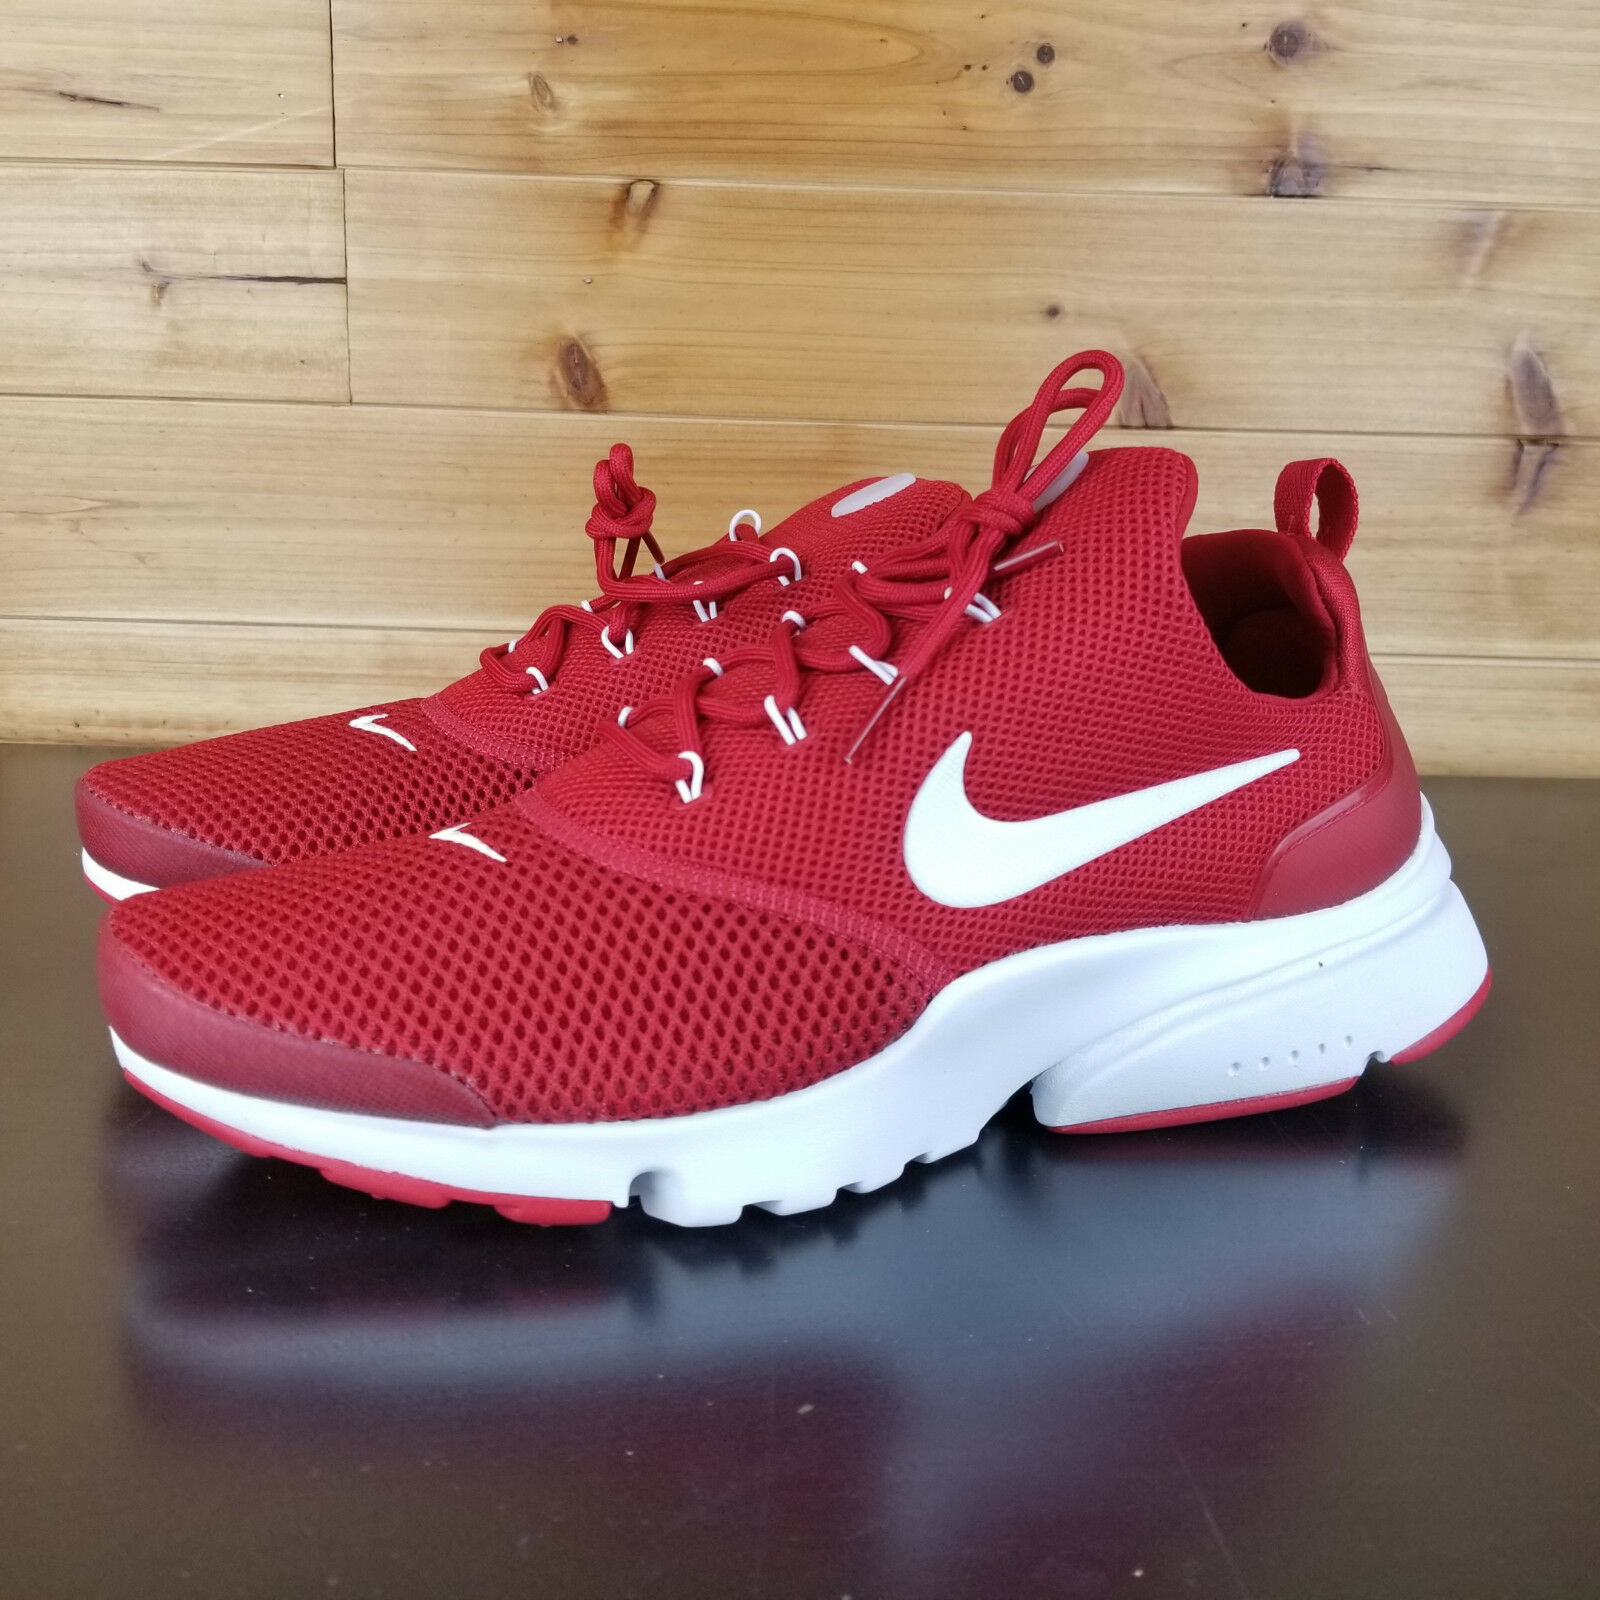 the latest 5386b 42c9b Nike Presto Fly Men shoes SZ 9.5 Gym Red Red Red White Sneakers 908019-600